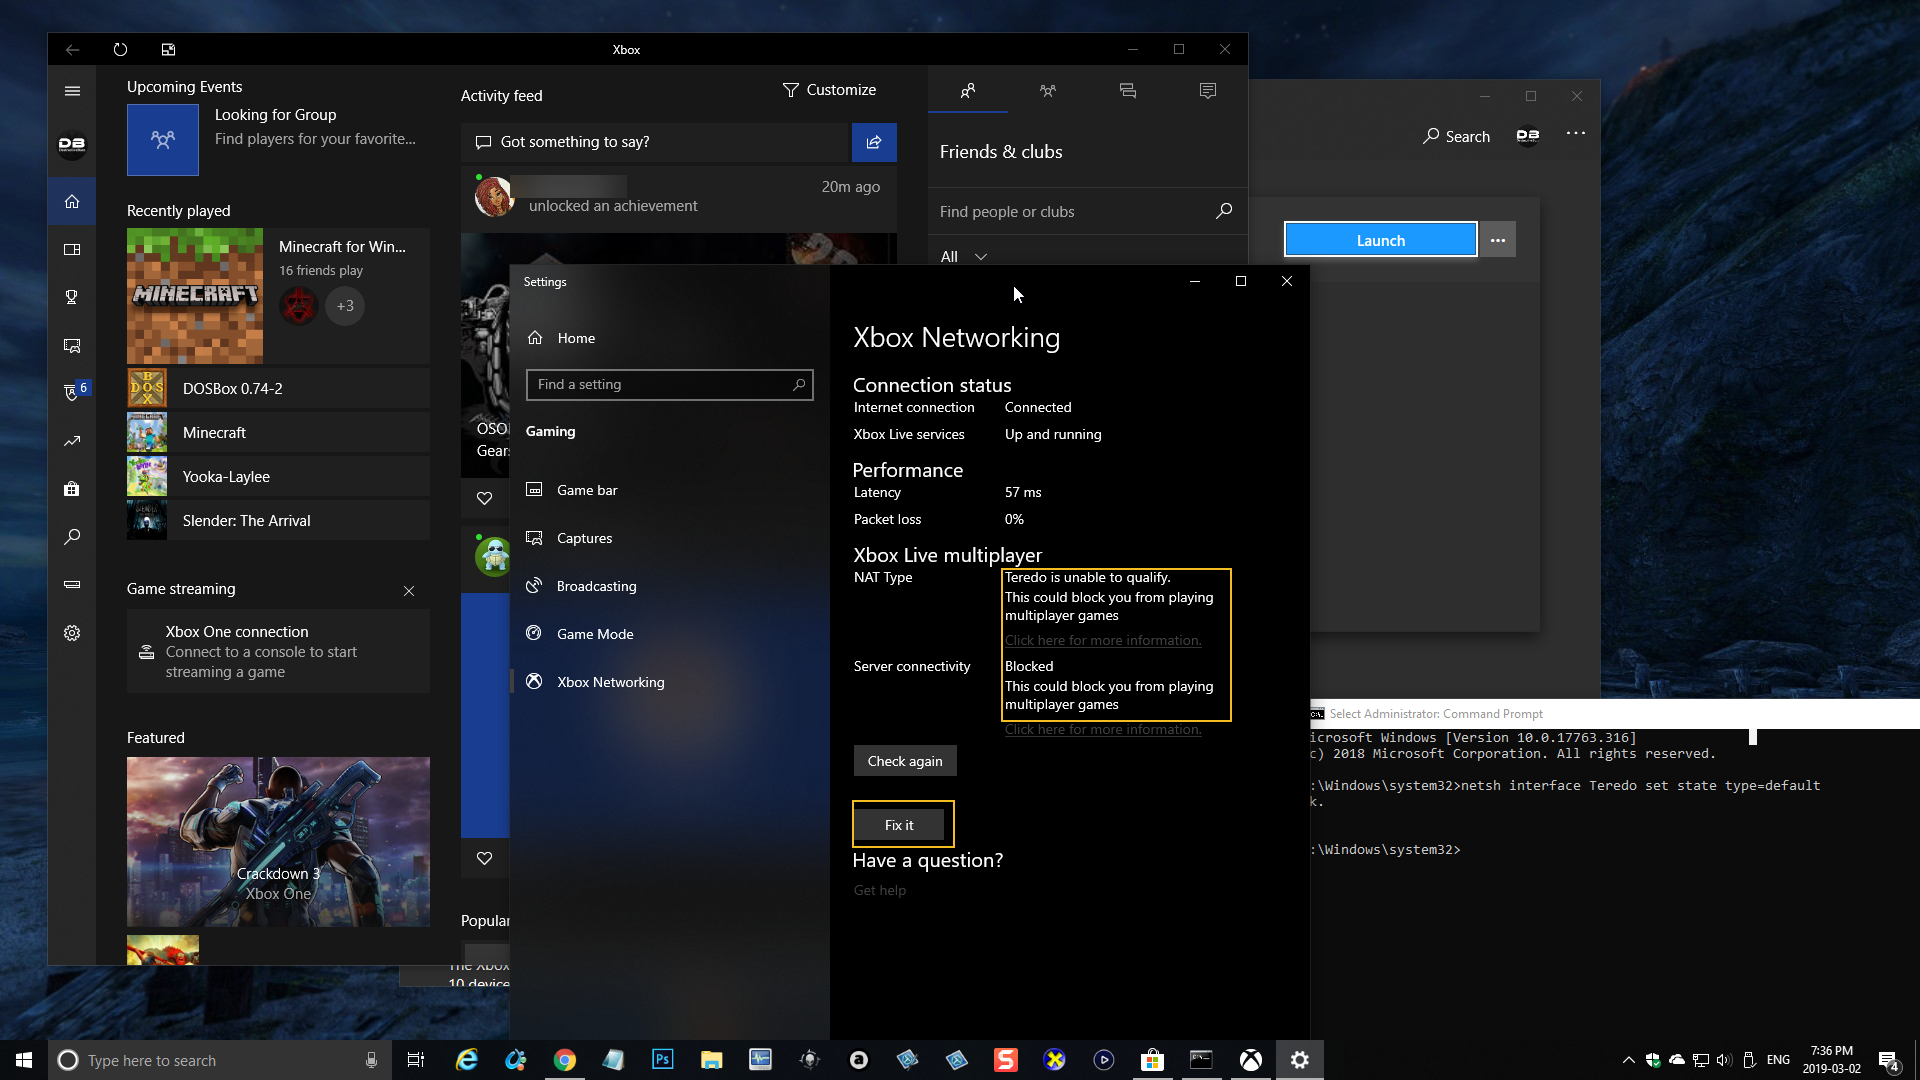 NAT type: Moderate and Server connectivity is Blocked in Xbox App